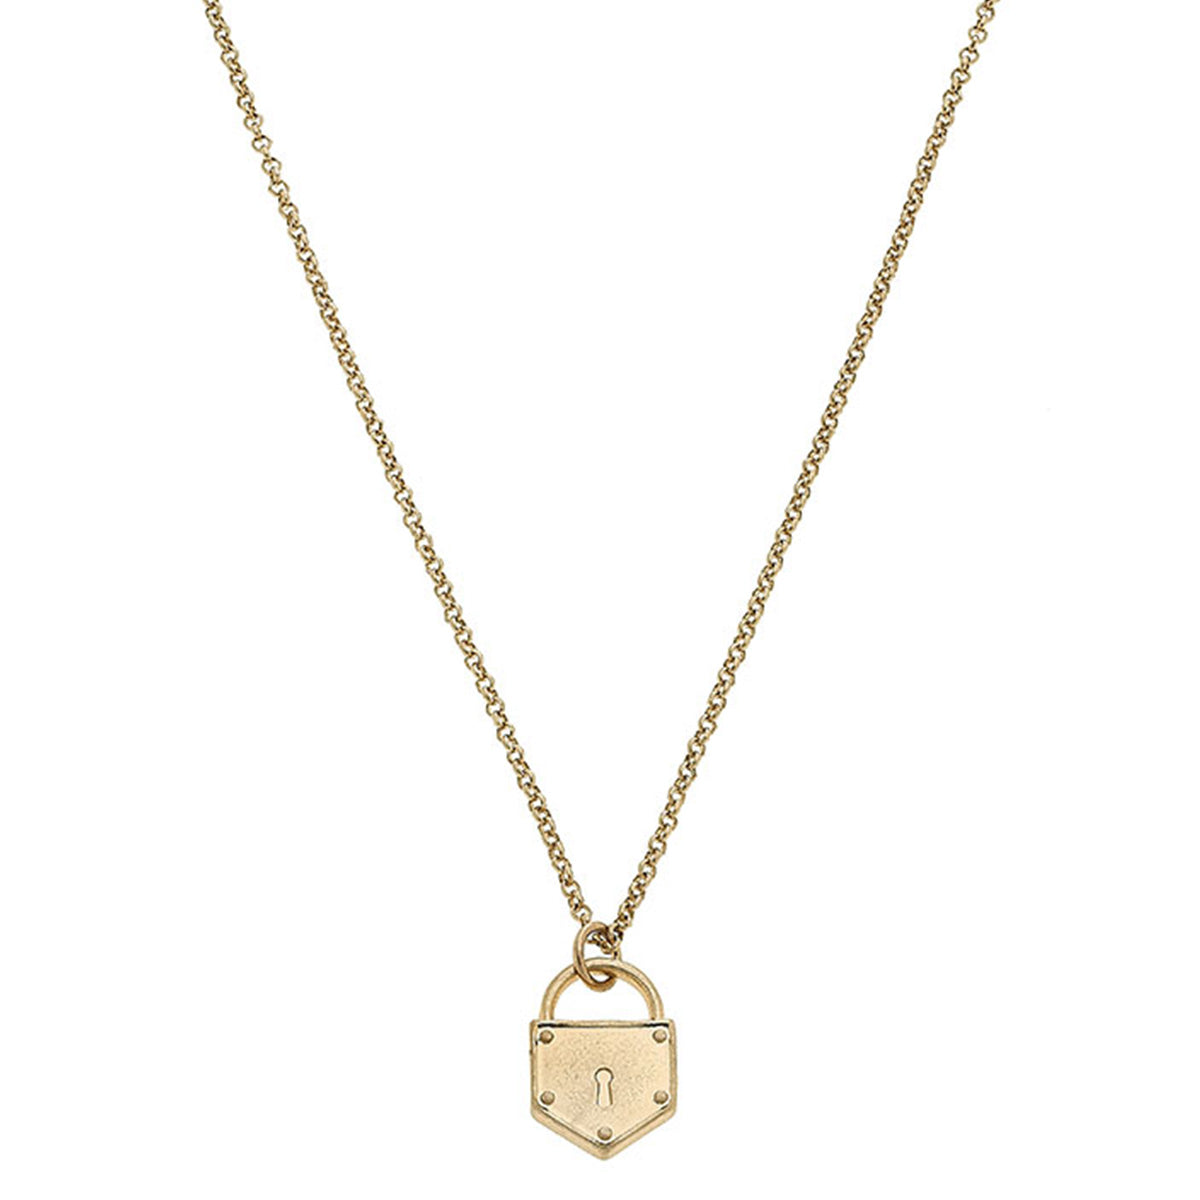 Piper Delicate Chain Padlock Necklace in Worn Gold